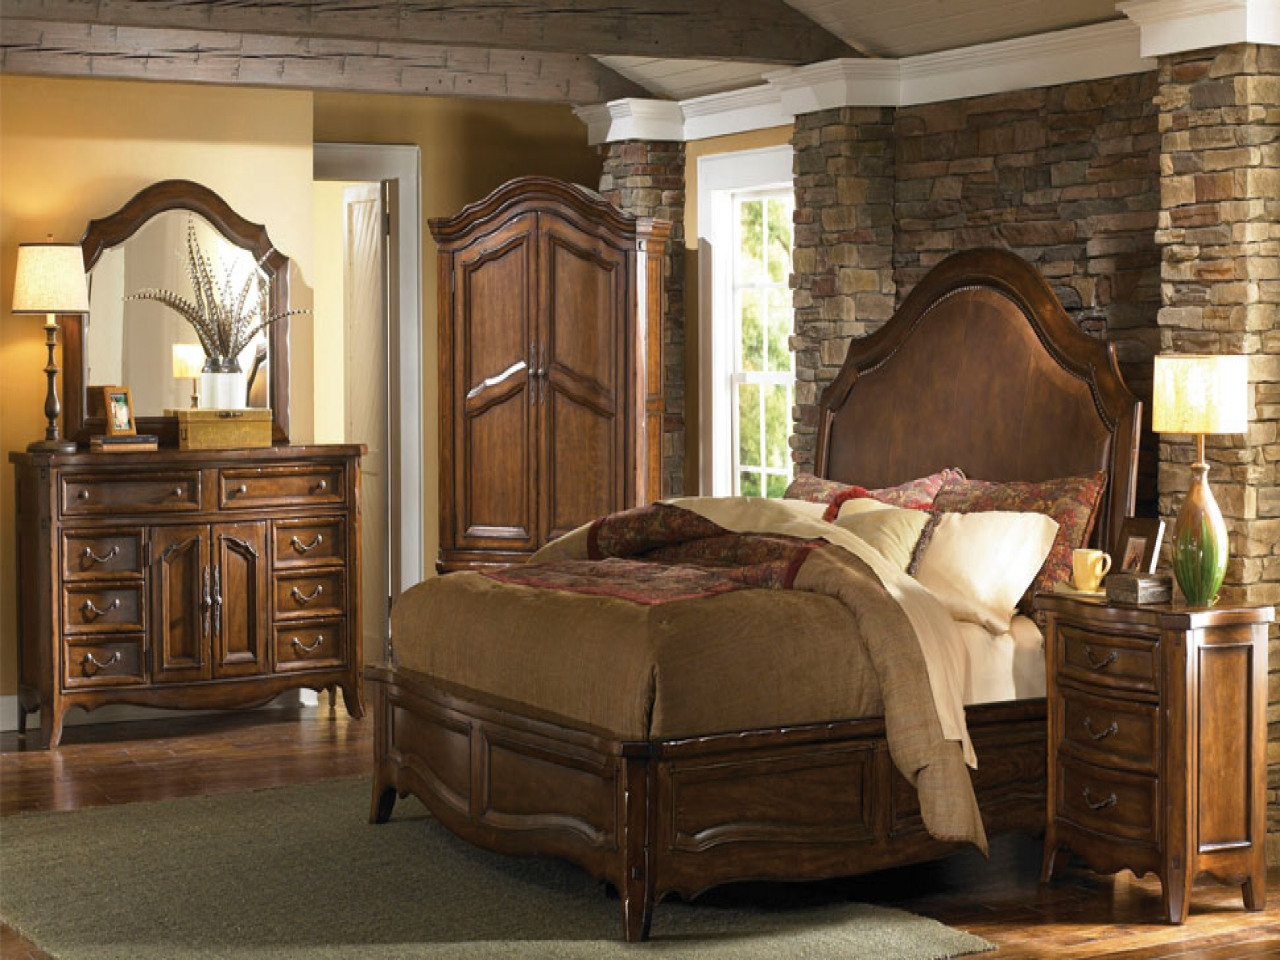 quality of wooden furniture